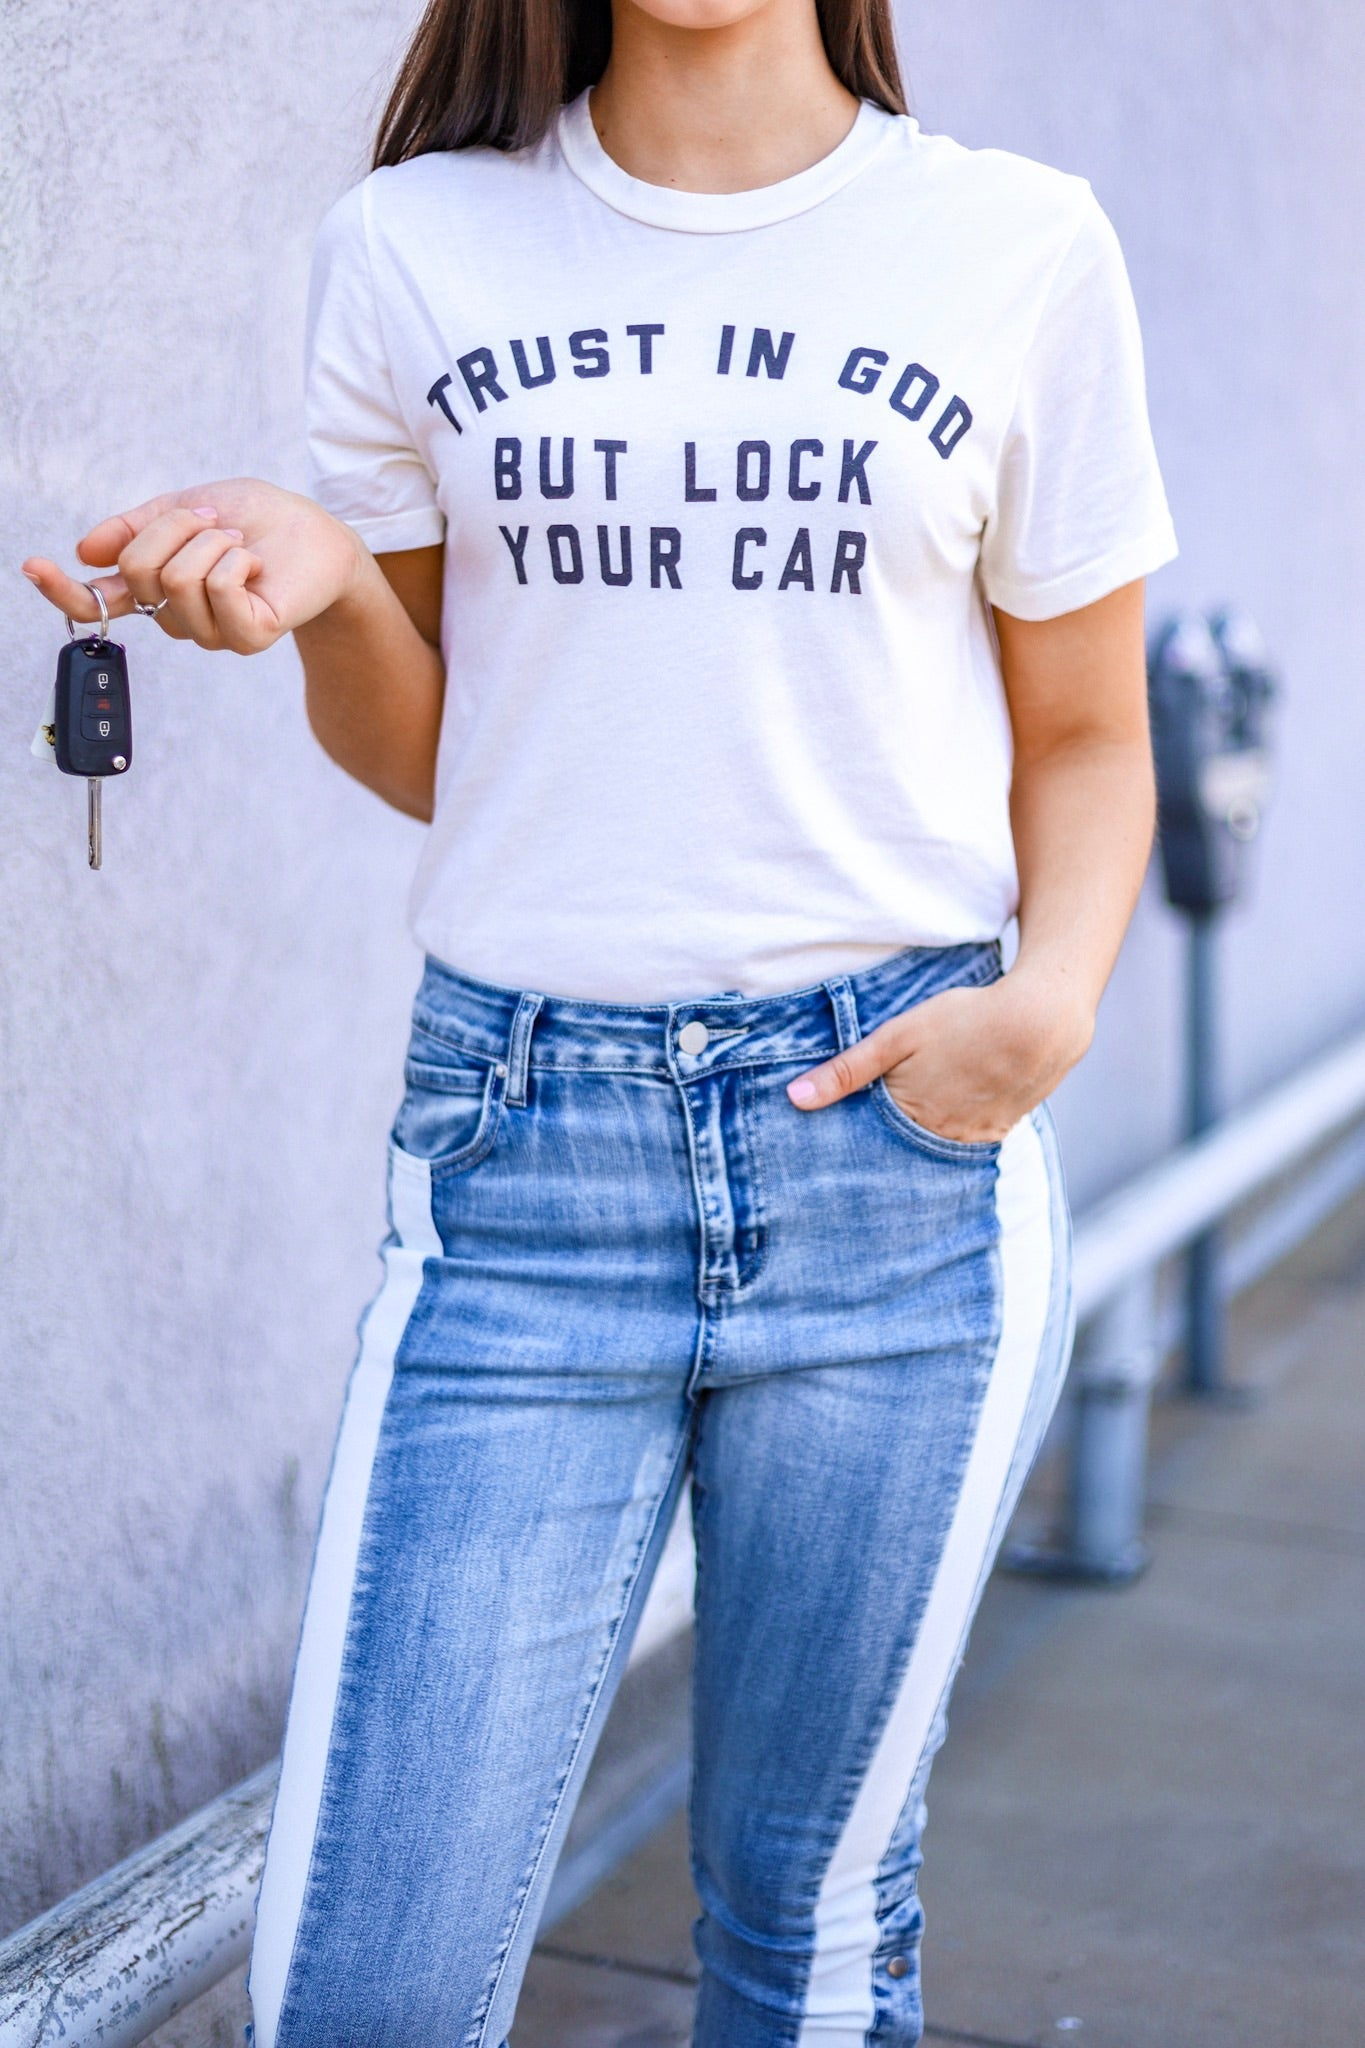 Trust In God But Lock Your Car Tee - Tops - Wight Elephant Boutique